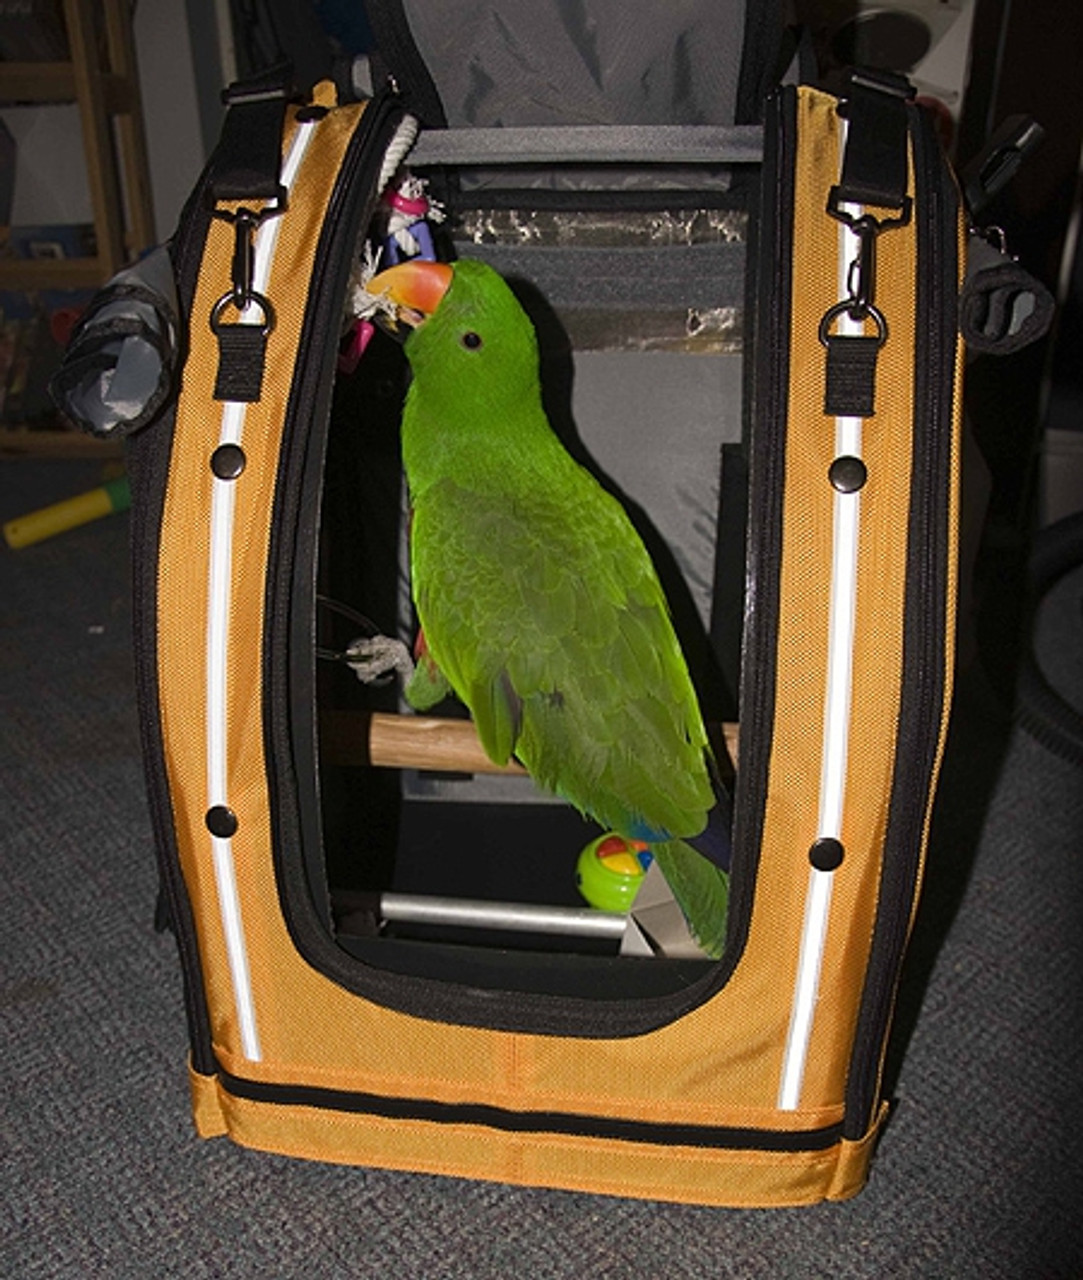 Eclectus Henry likes riding in a car